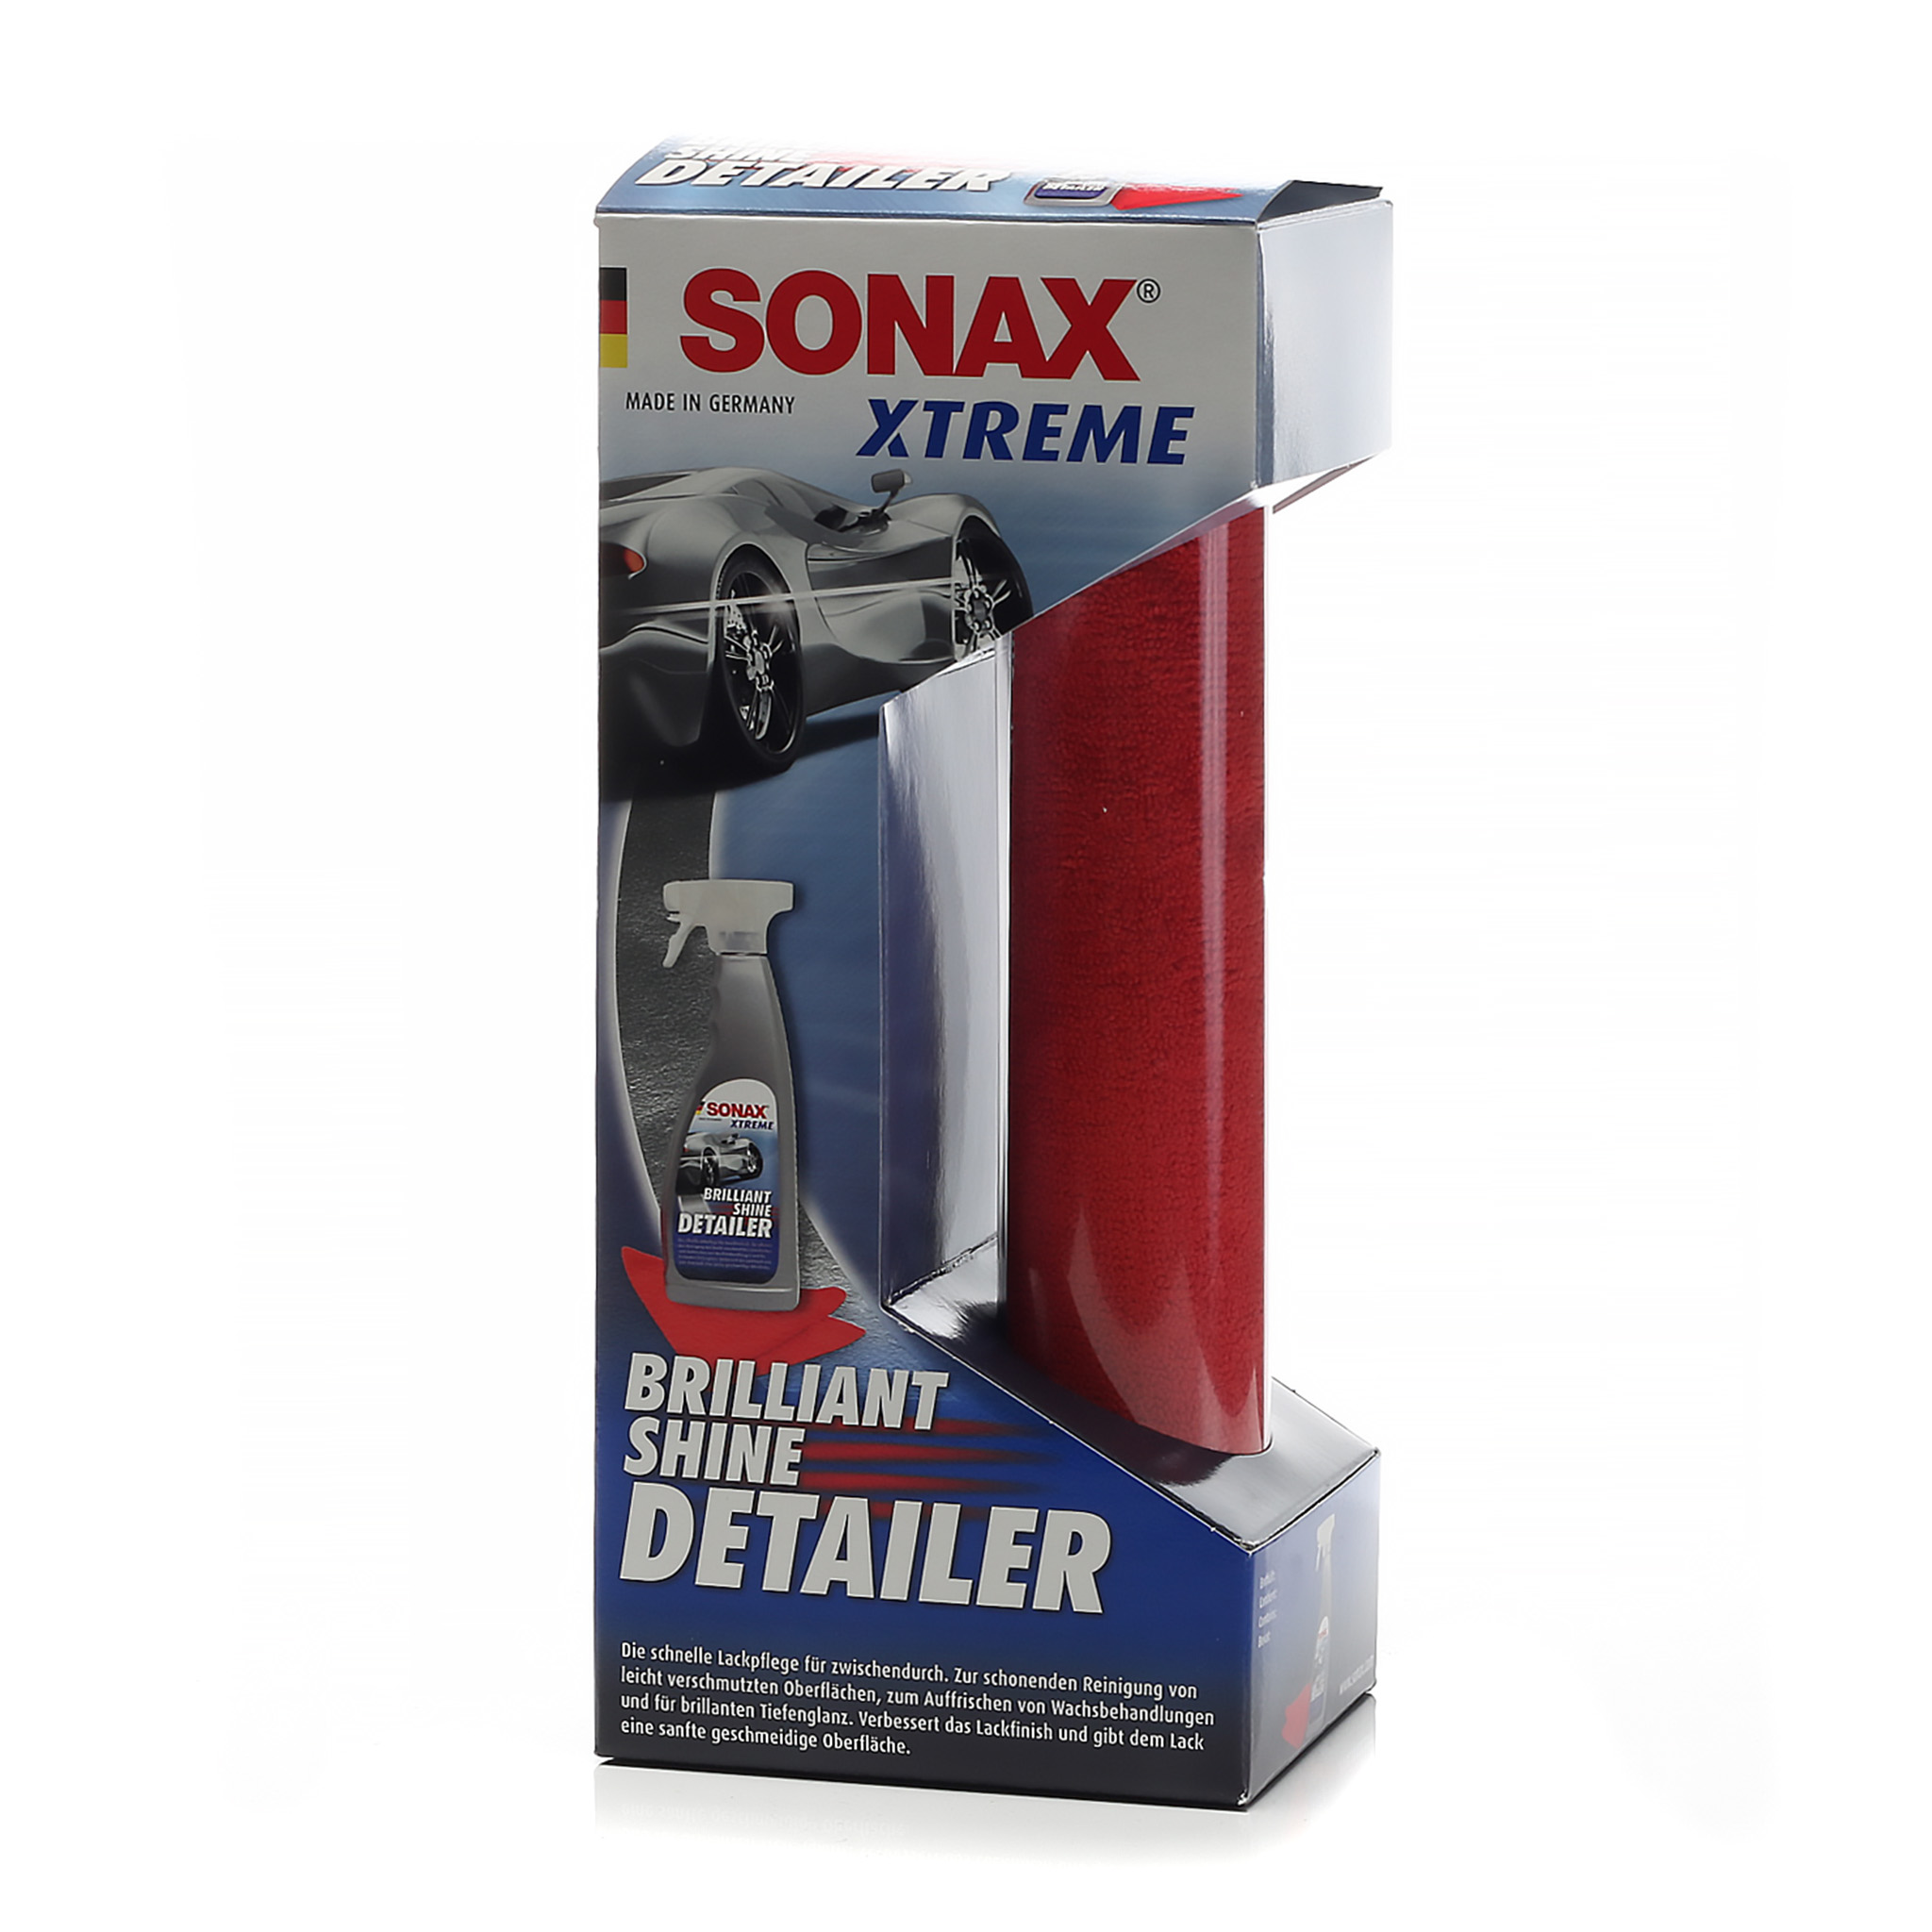 sonax brilliant shine detailer bsd product review. Black Bedroom Furniture Sets. Home Design Ideas